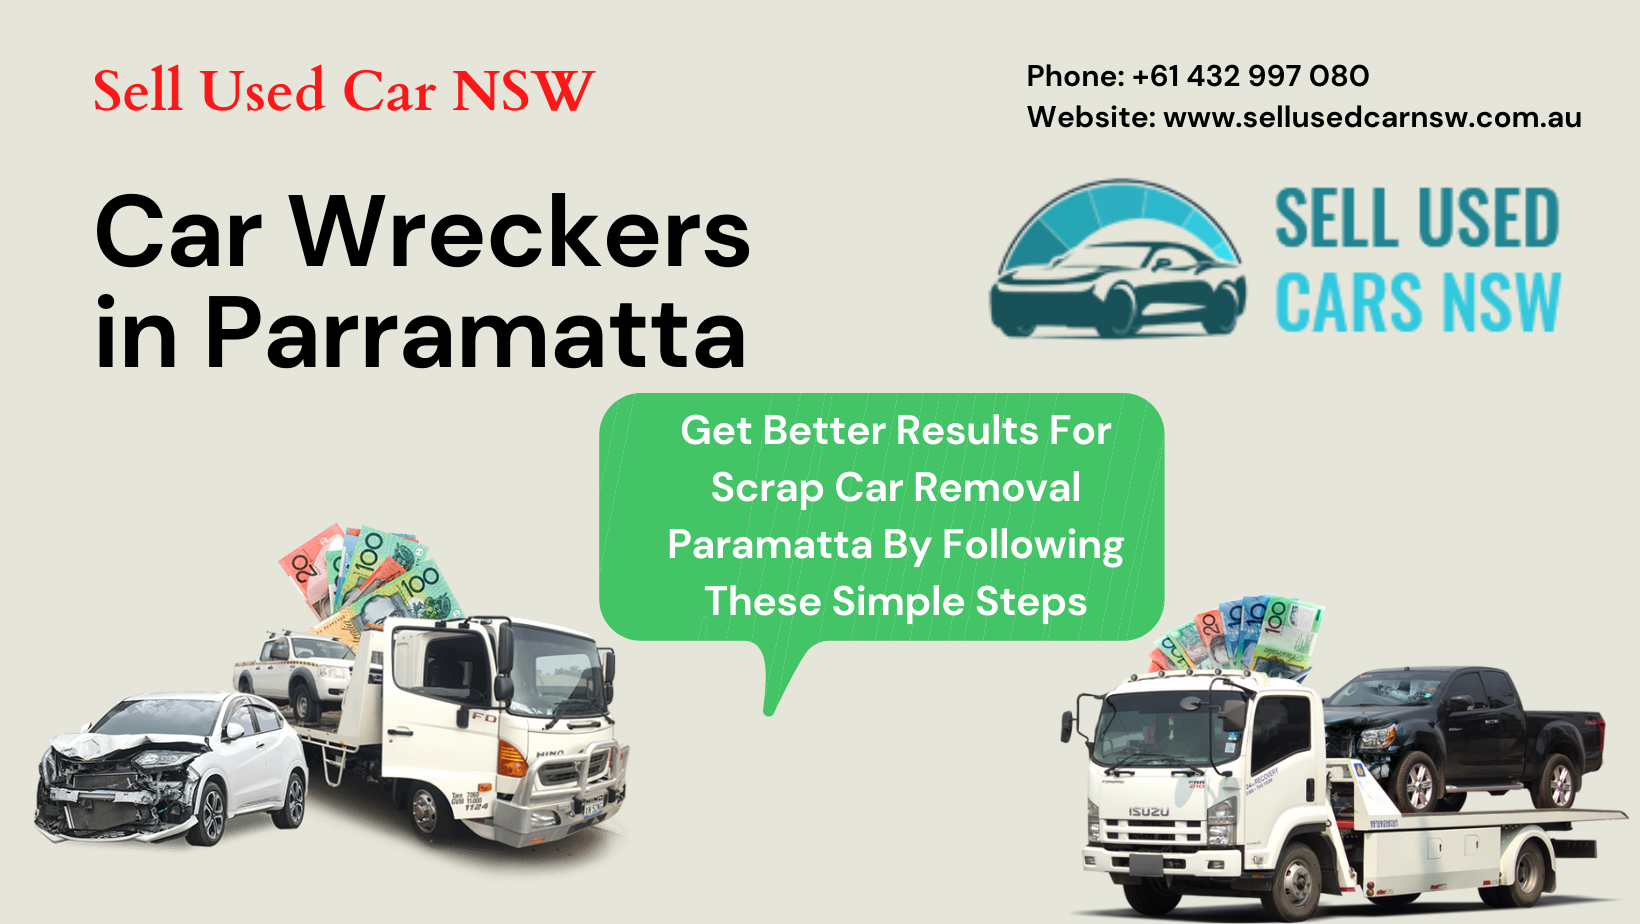 Get Better Results For Scrap Car Removal Paramatta By Following These Simple Steps